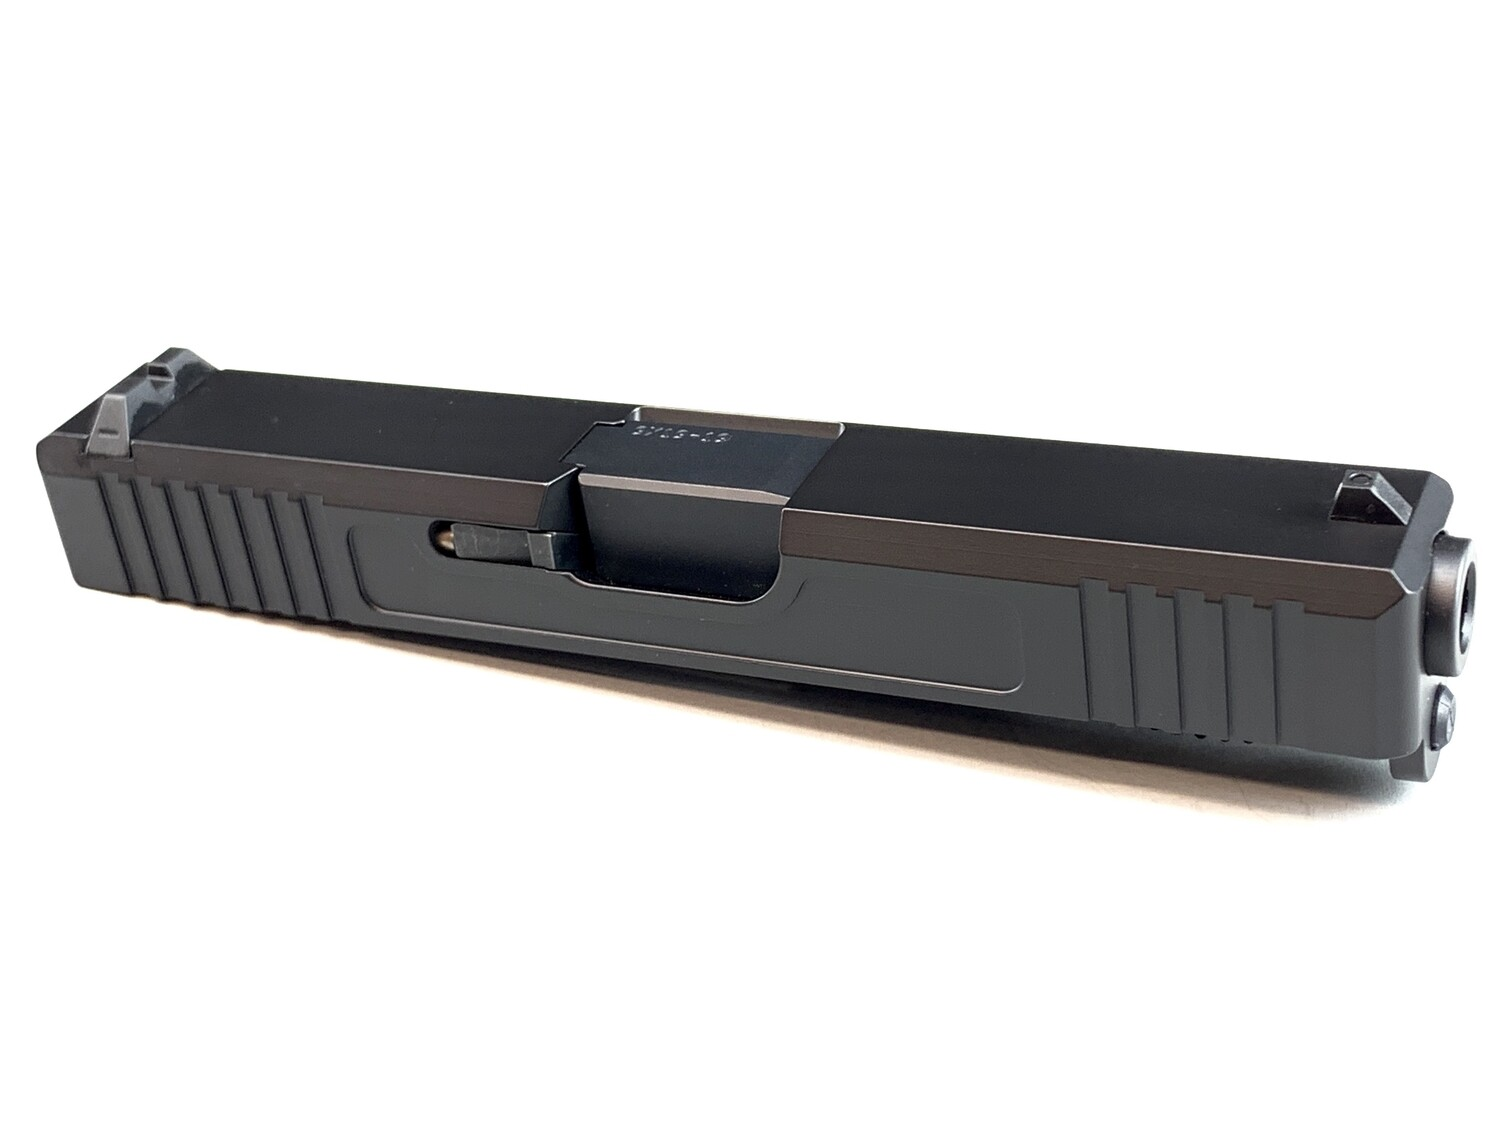 Glock 19 Slide w/ Front & Rear Serrations - Black